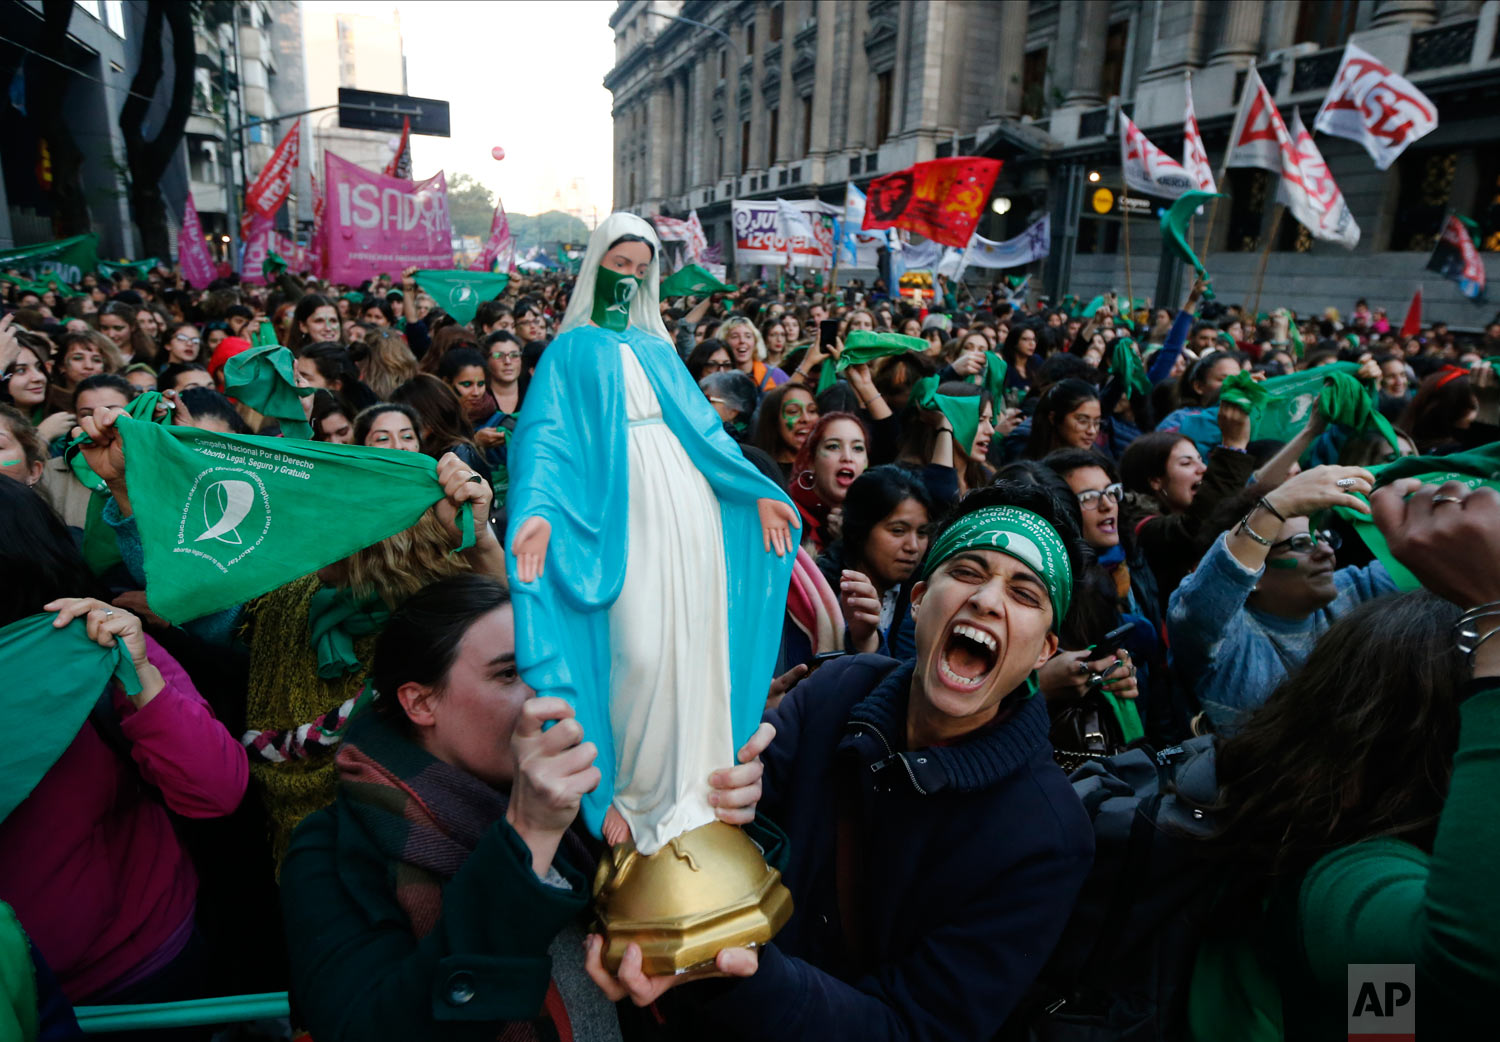 Pro-choice activists carry a statue of the Virgin Mary which features a green handkerchief symbolizing the abortion rights movement in Argentina during a rally outside Congress in favor of legalizing abortion in Buenos Aires, Argentina, Tuesday, May 28, 2019. (AP Photo/Marcos Brindicci)